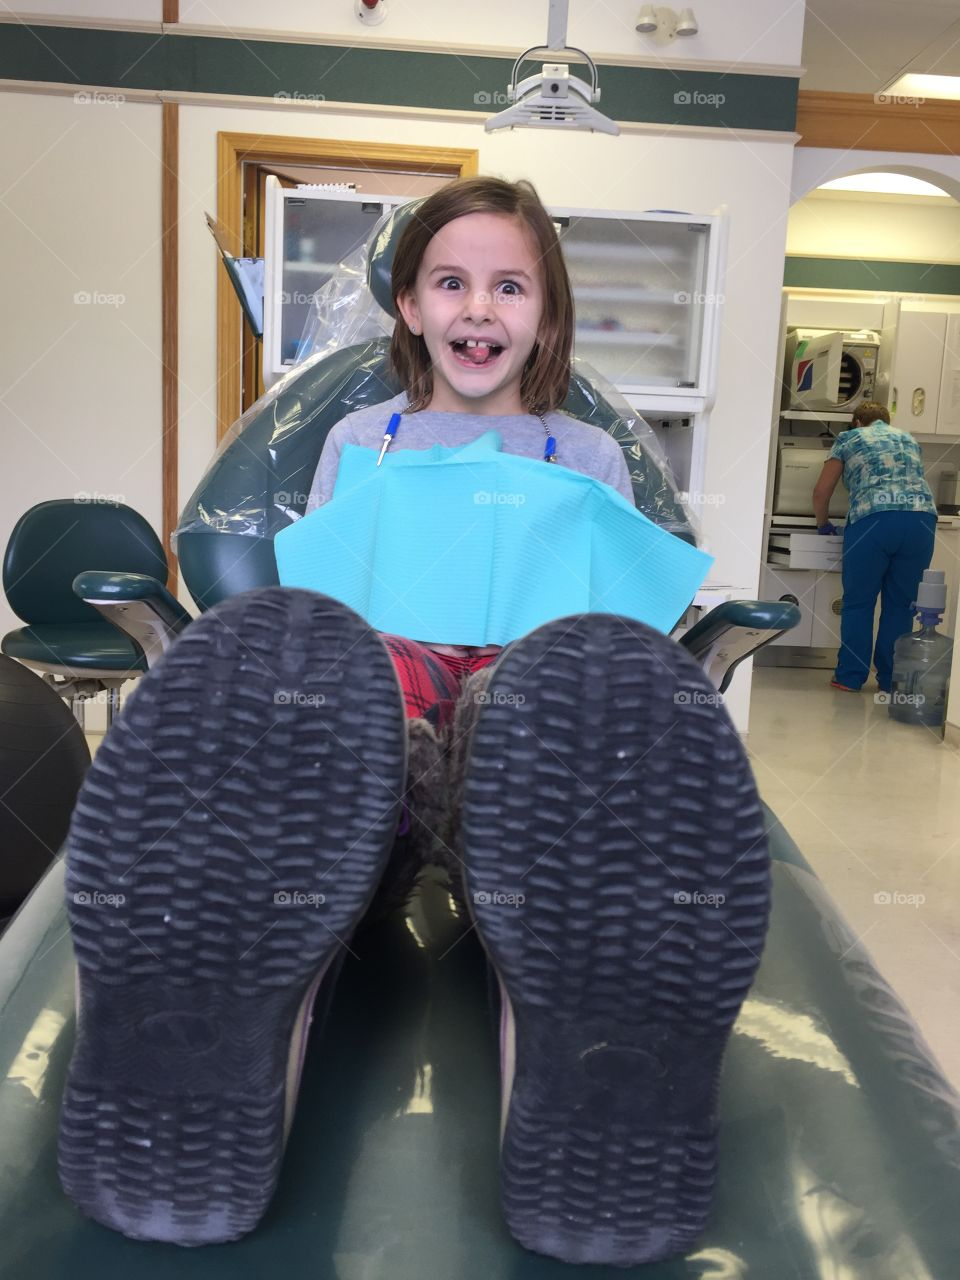 Little girl sitting on dentist chair